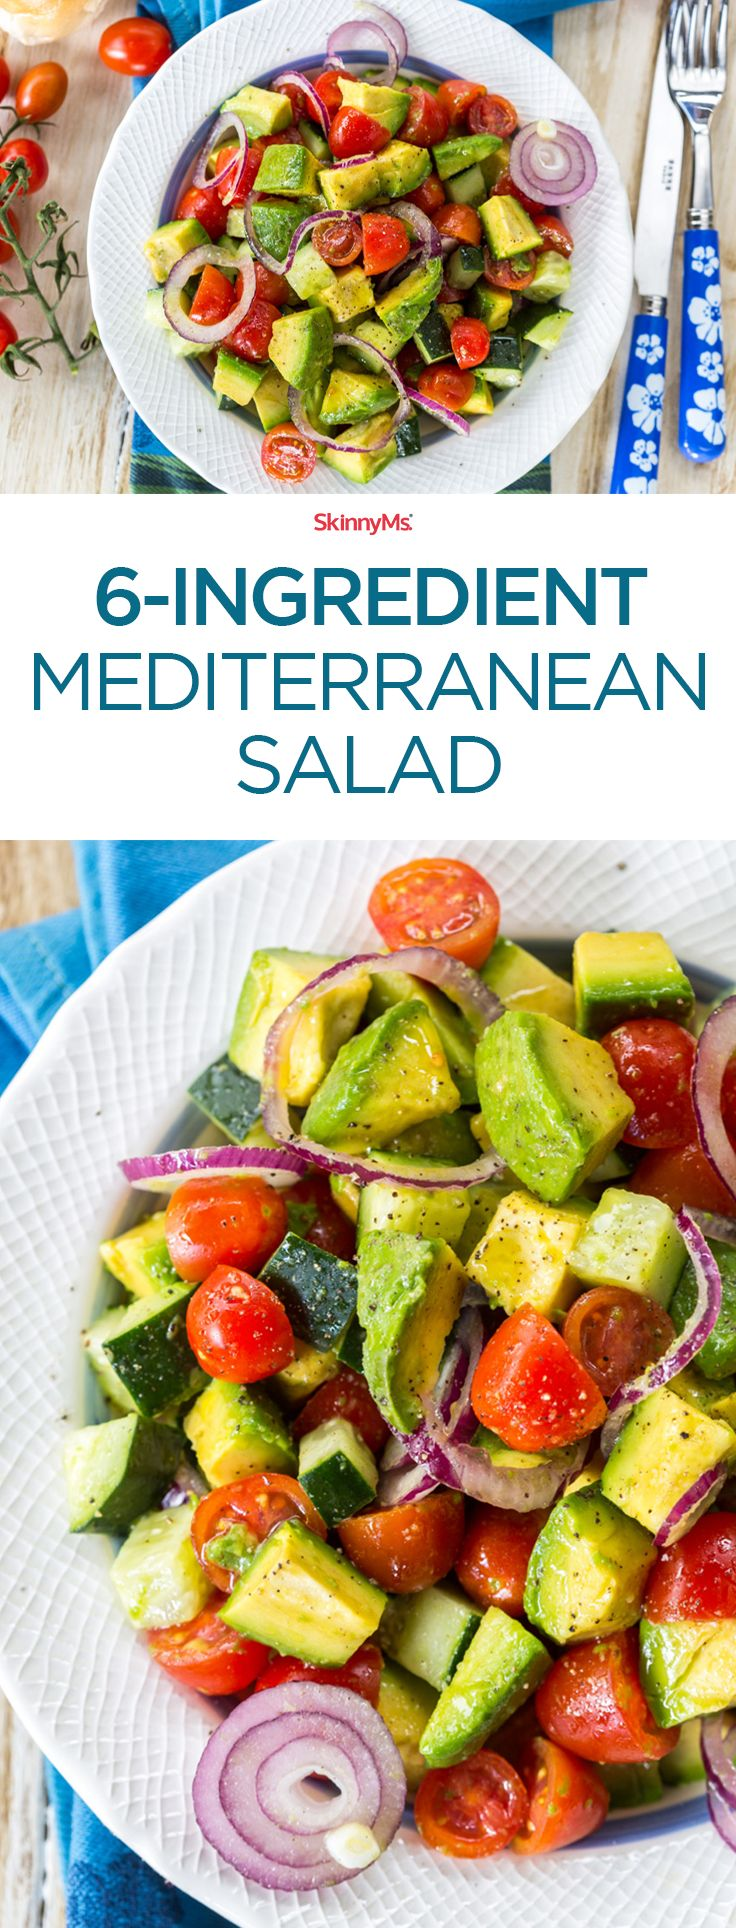 6-Ingredient Mediterranean Salad: I love making this salad on Sundays. It's so good! #salad #cleaneating #mediterrranean #skinnyms